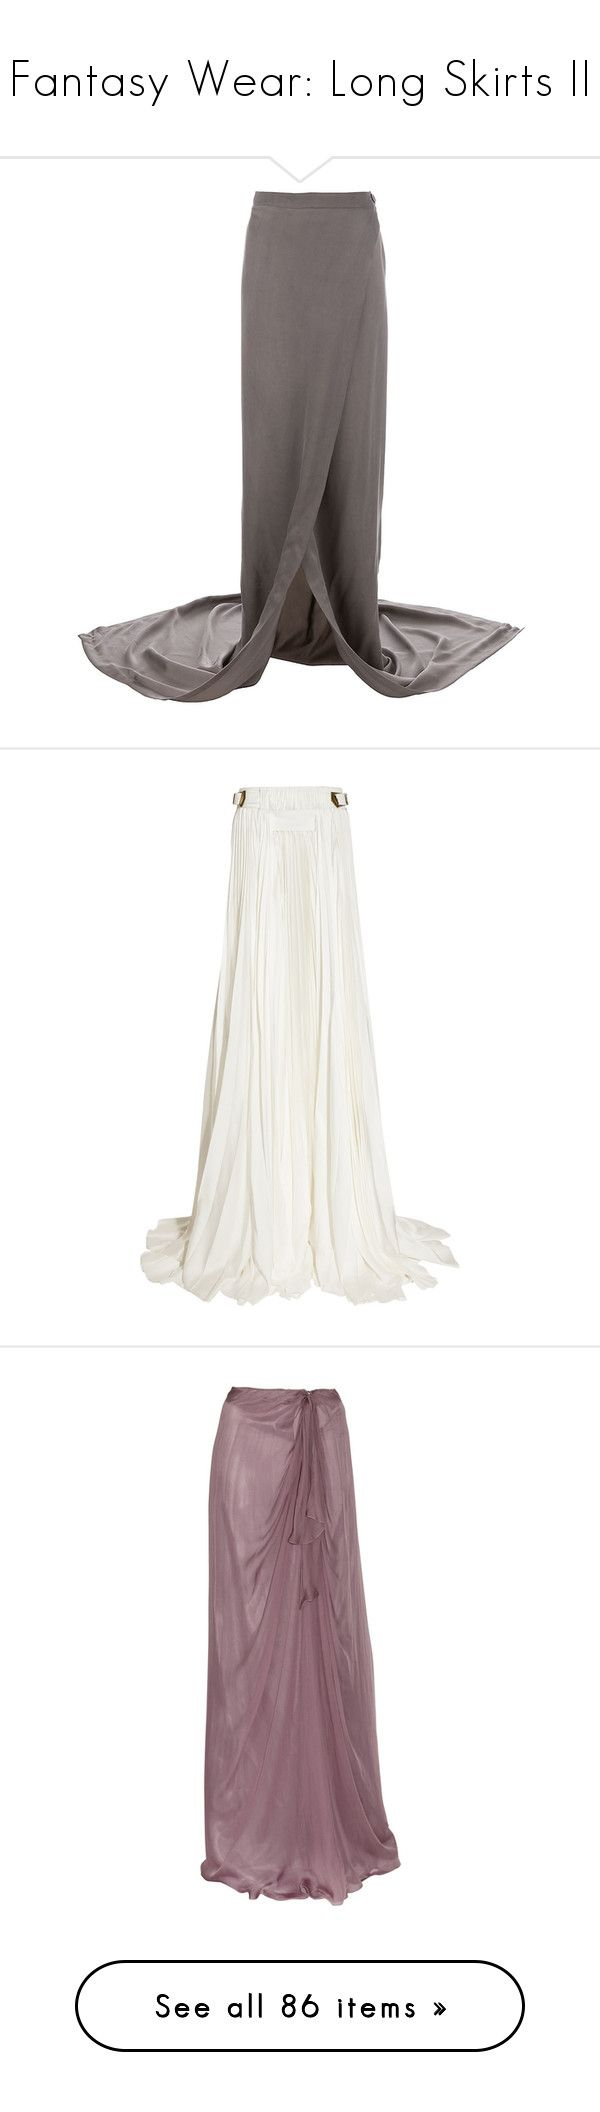 """""""Fantasy Wear: Long Skirts II"""" by savagedamsel ❤ liked on Polyvore featuring skirts, bottoms, long gray skirt, long grey maxi skirt, floor length maxi skirt, gray maxi skirt, grey maxi skirt, dresses, balmain and pleated skirt"""